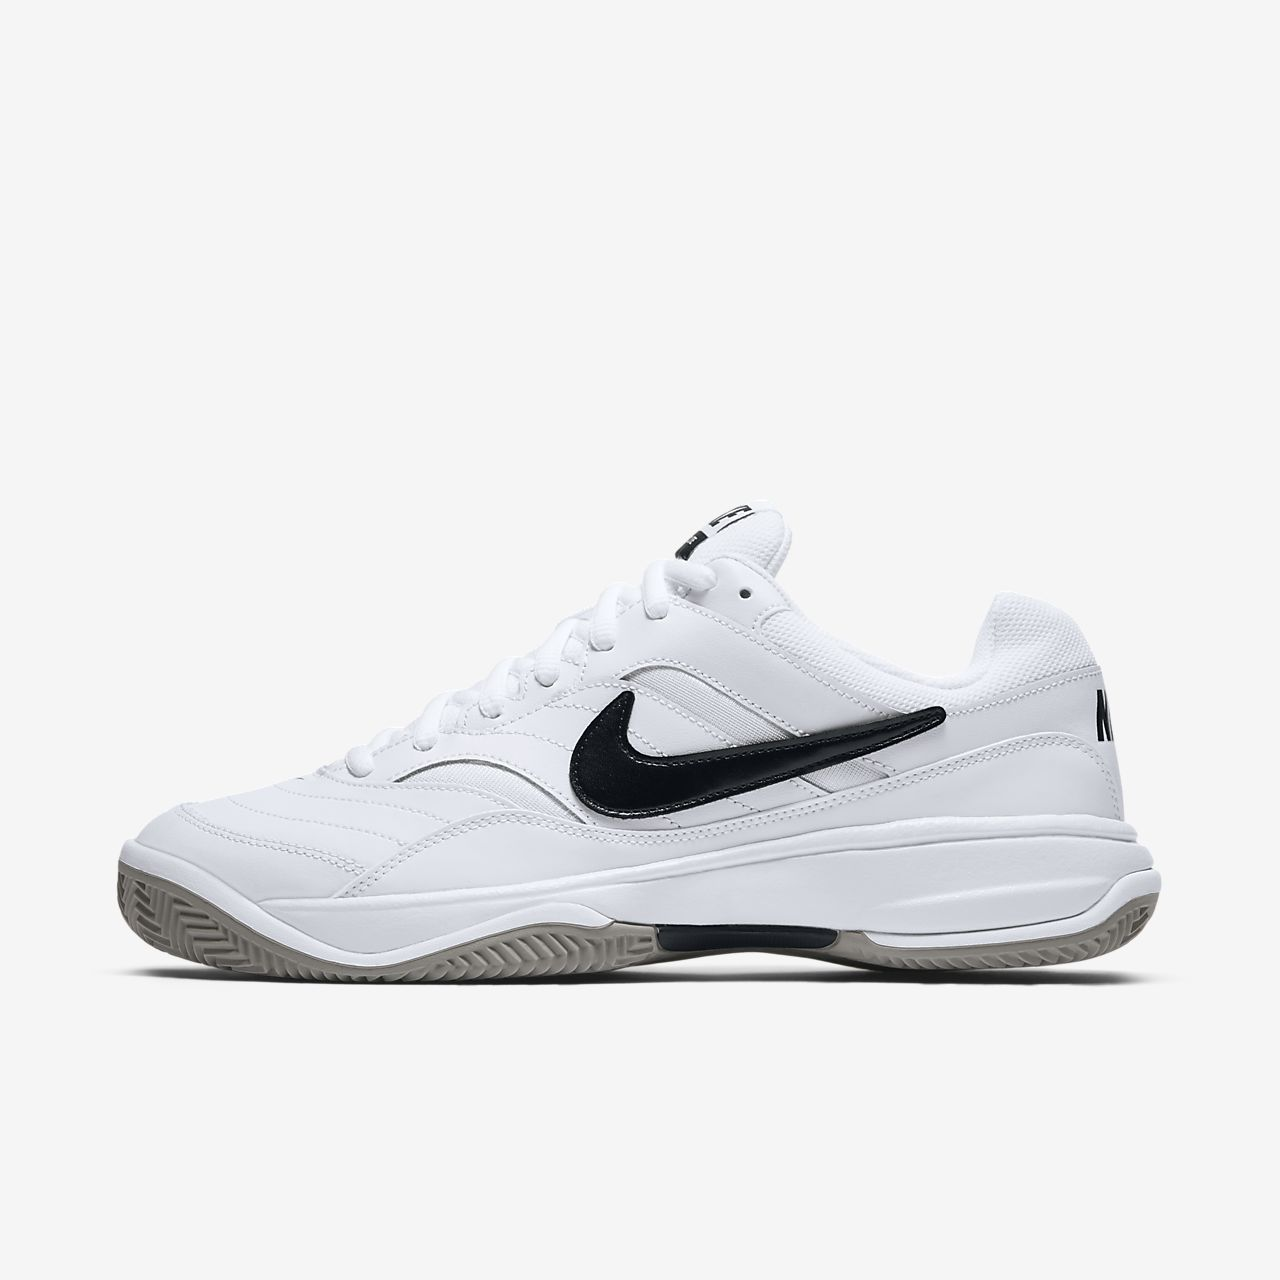 Nike Court Lite Clay (845026-100) Mens Tennis Shoes White/Black/Grey